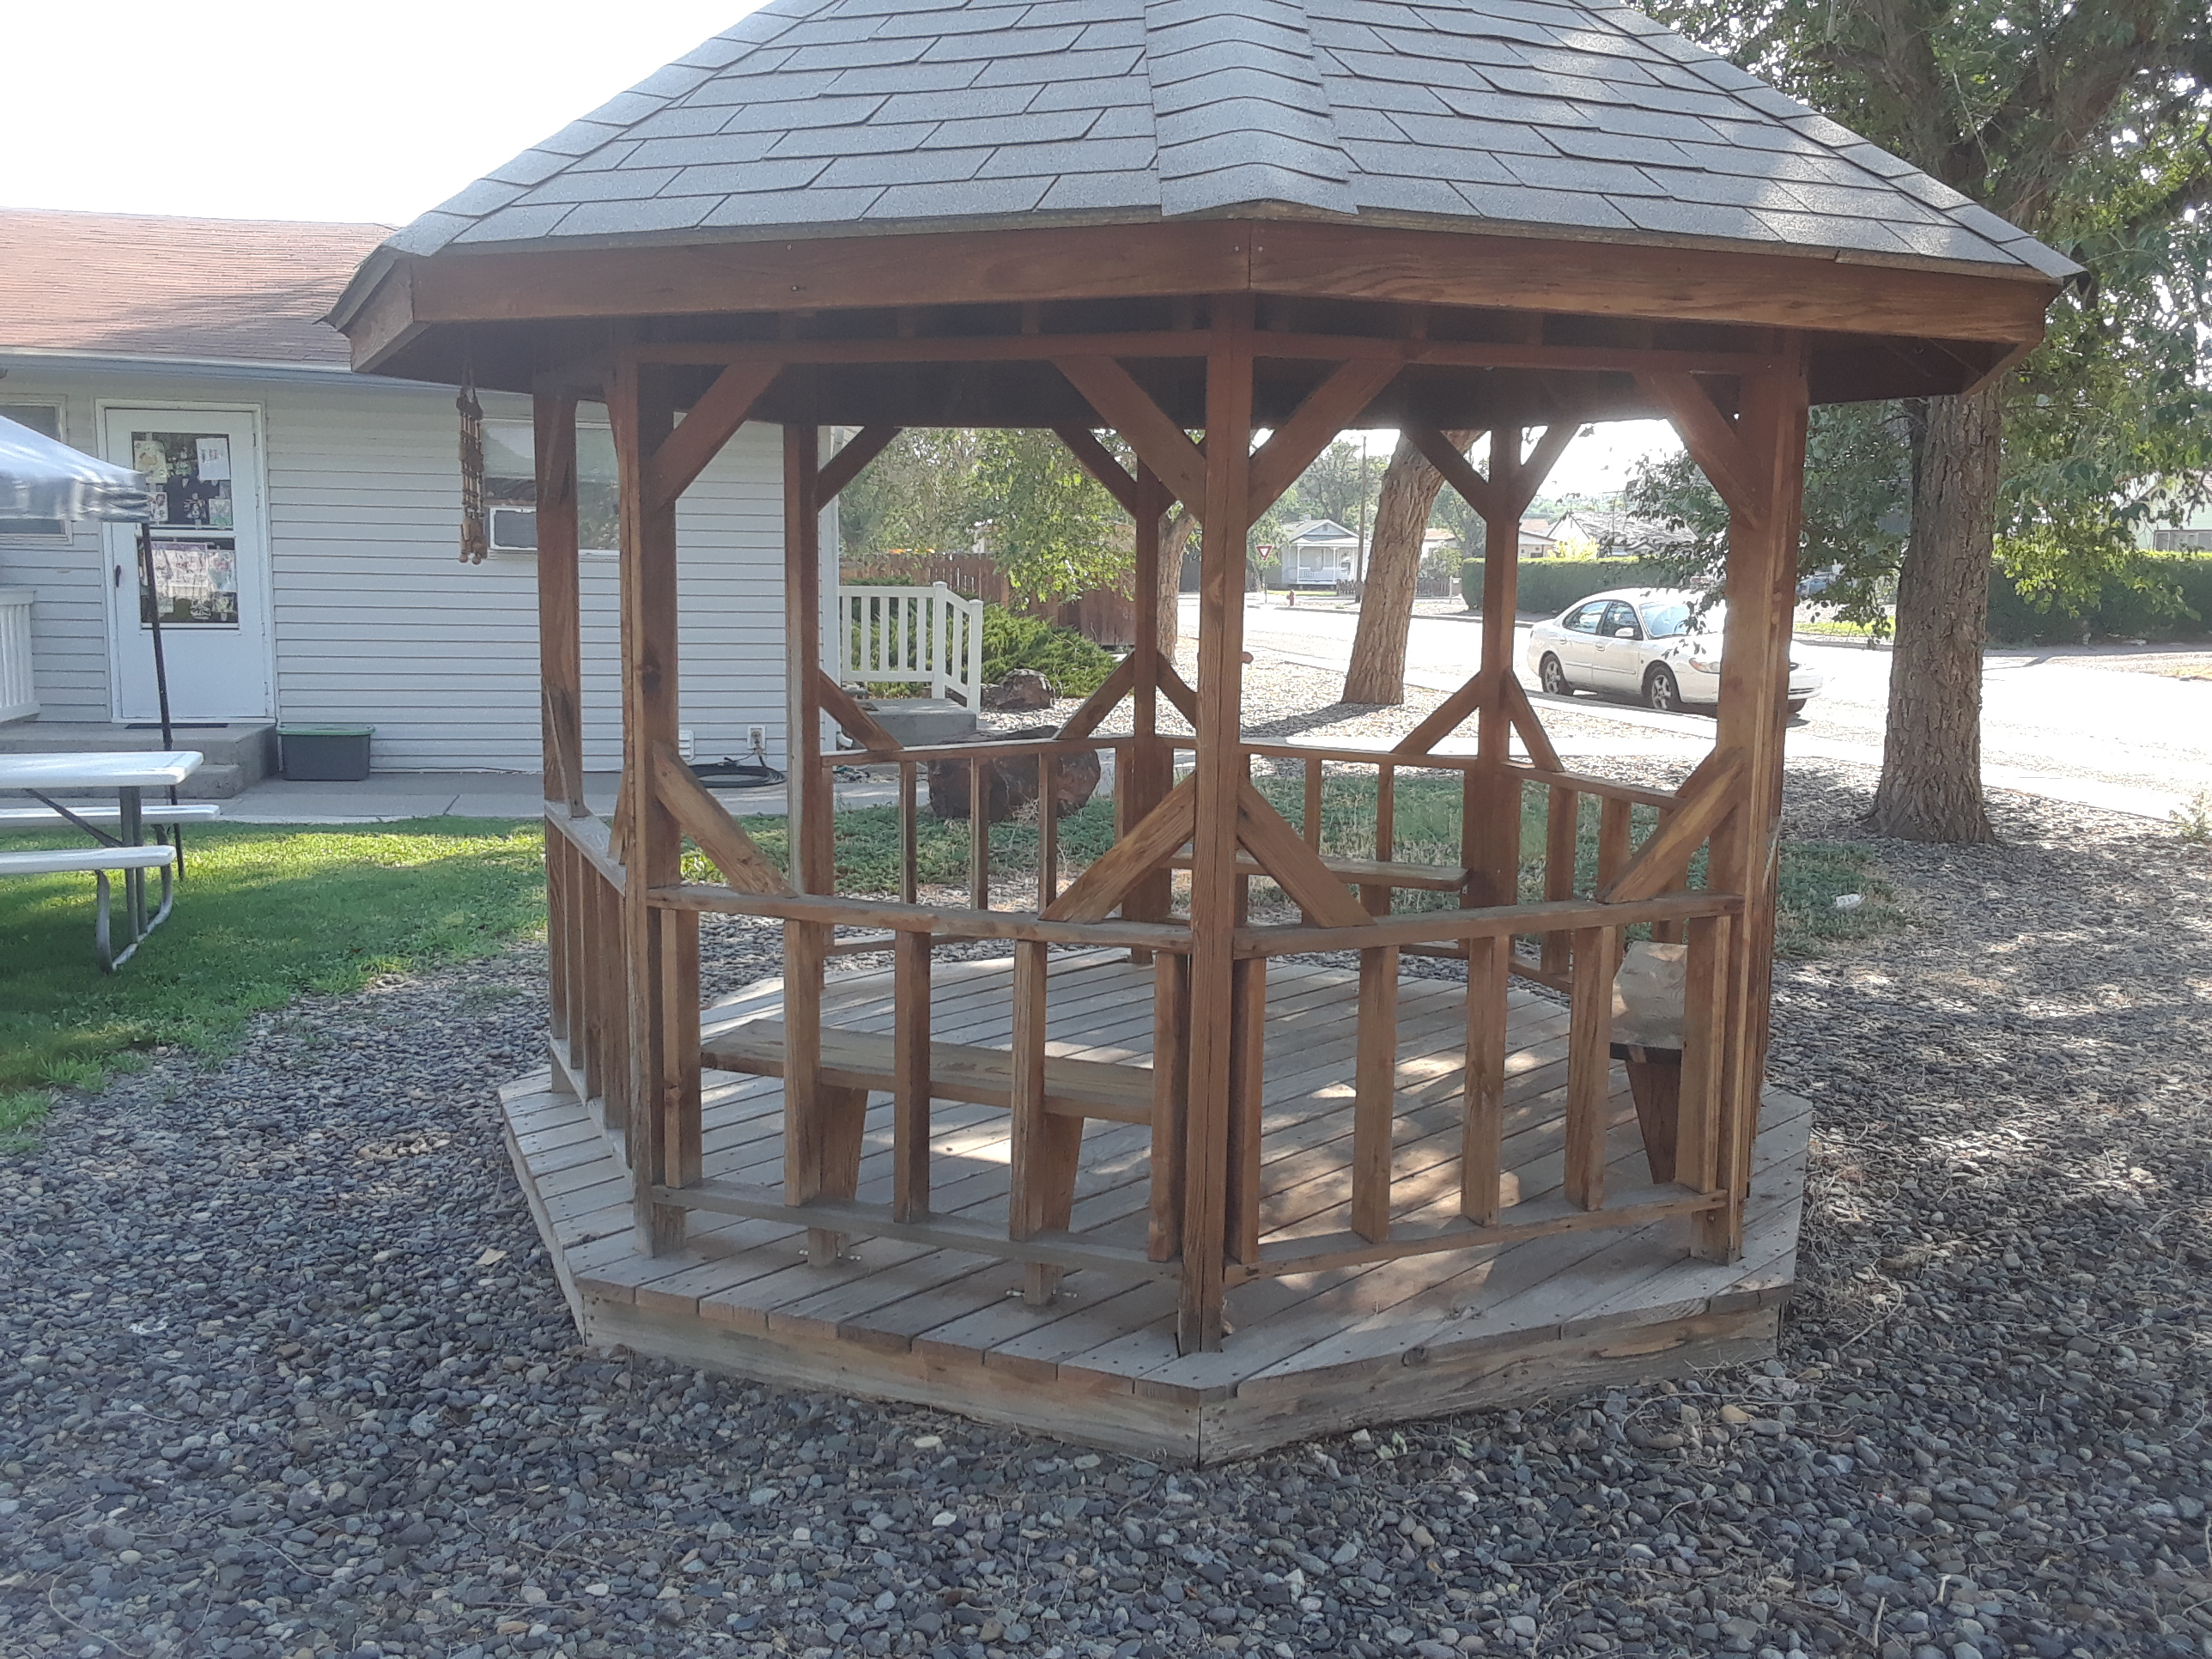 Gazebo before